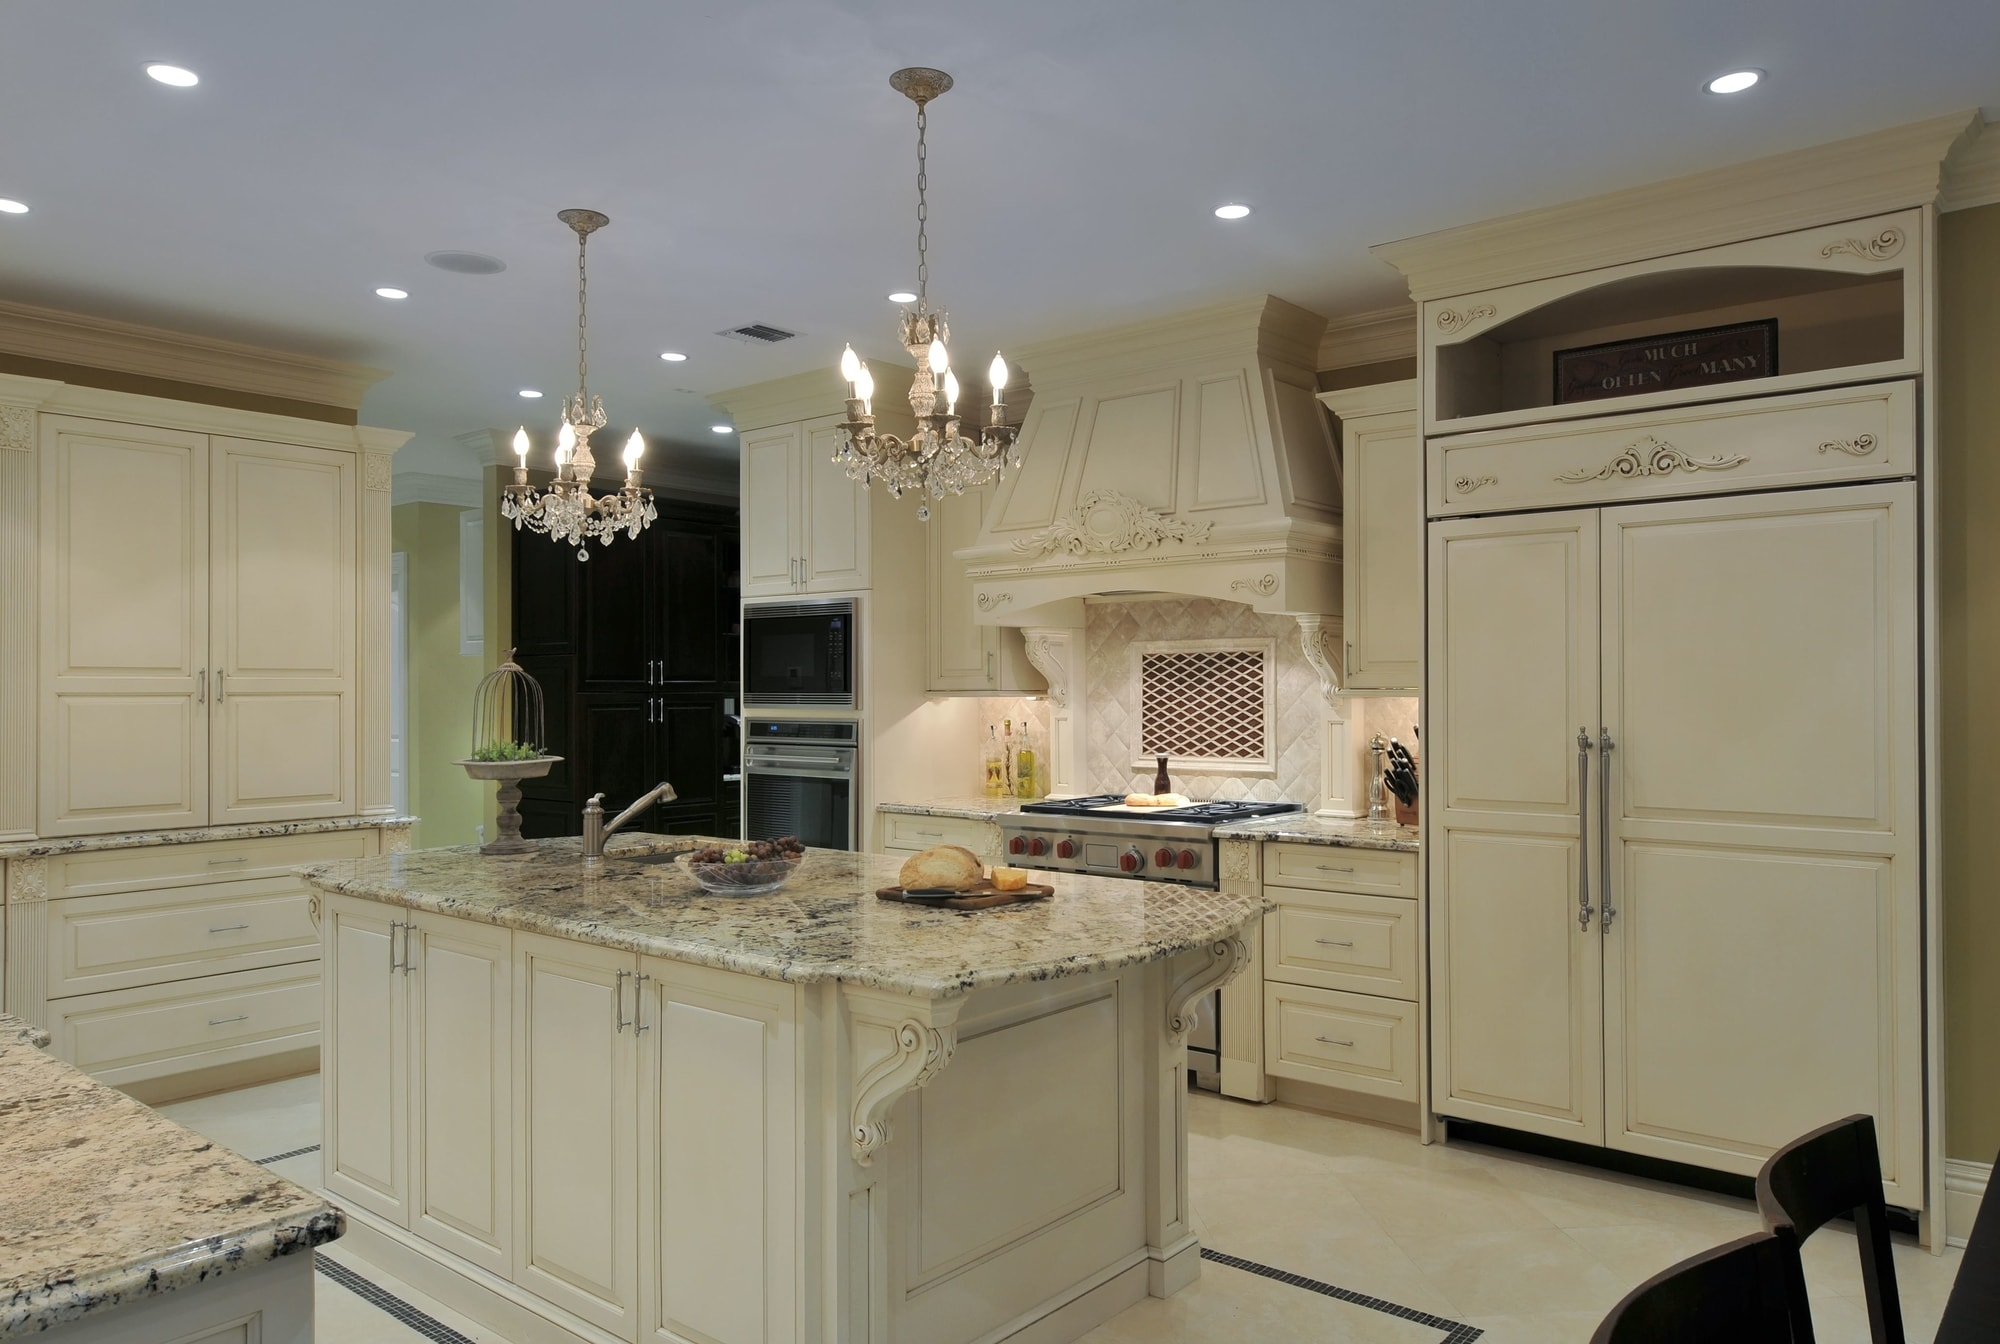 Traditional style kitchen with white drawers and cabinets